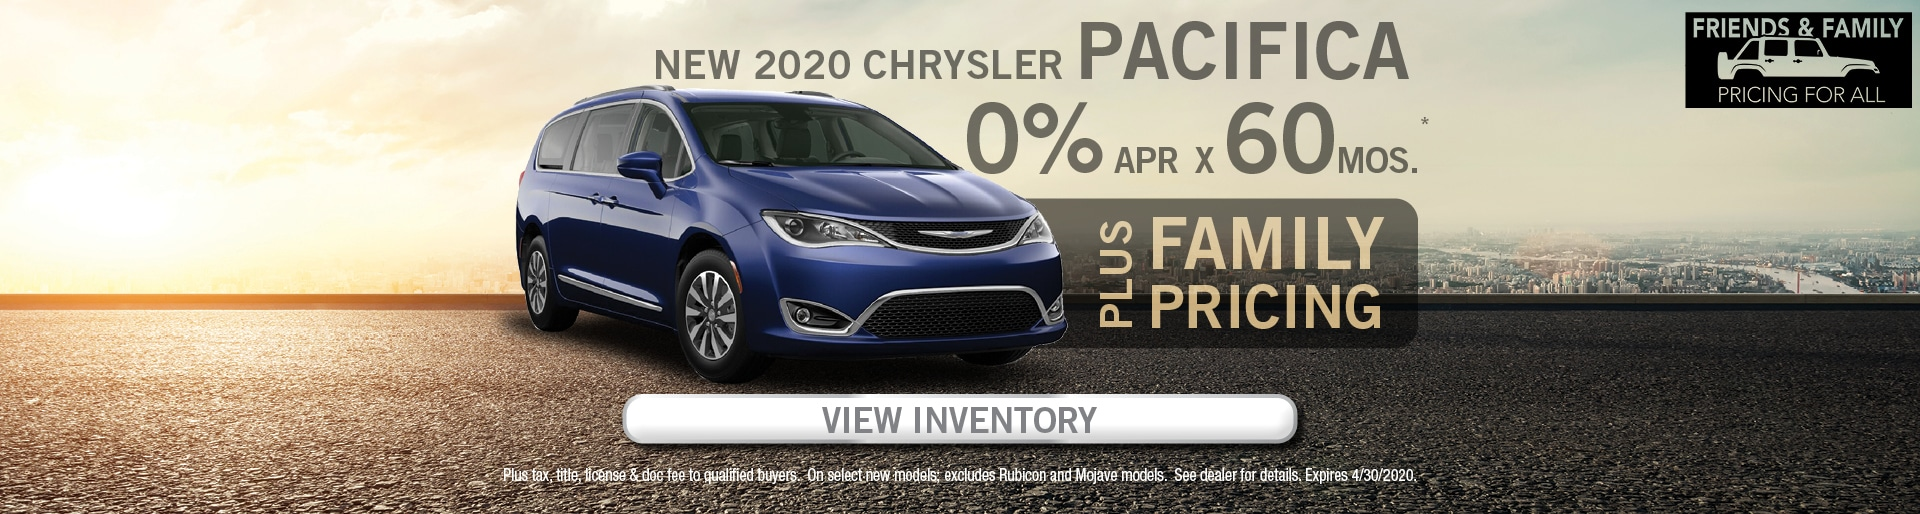 Pacifica purchase offer